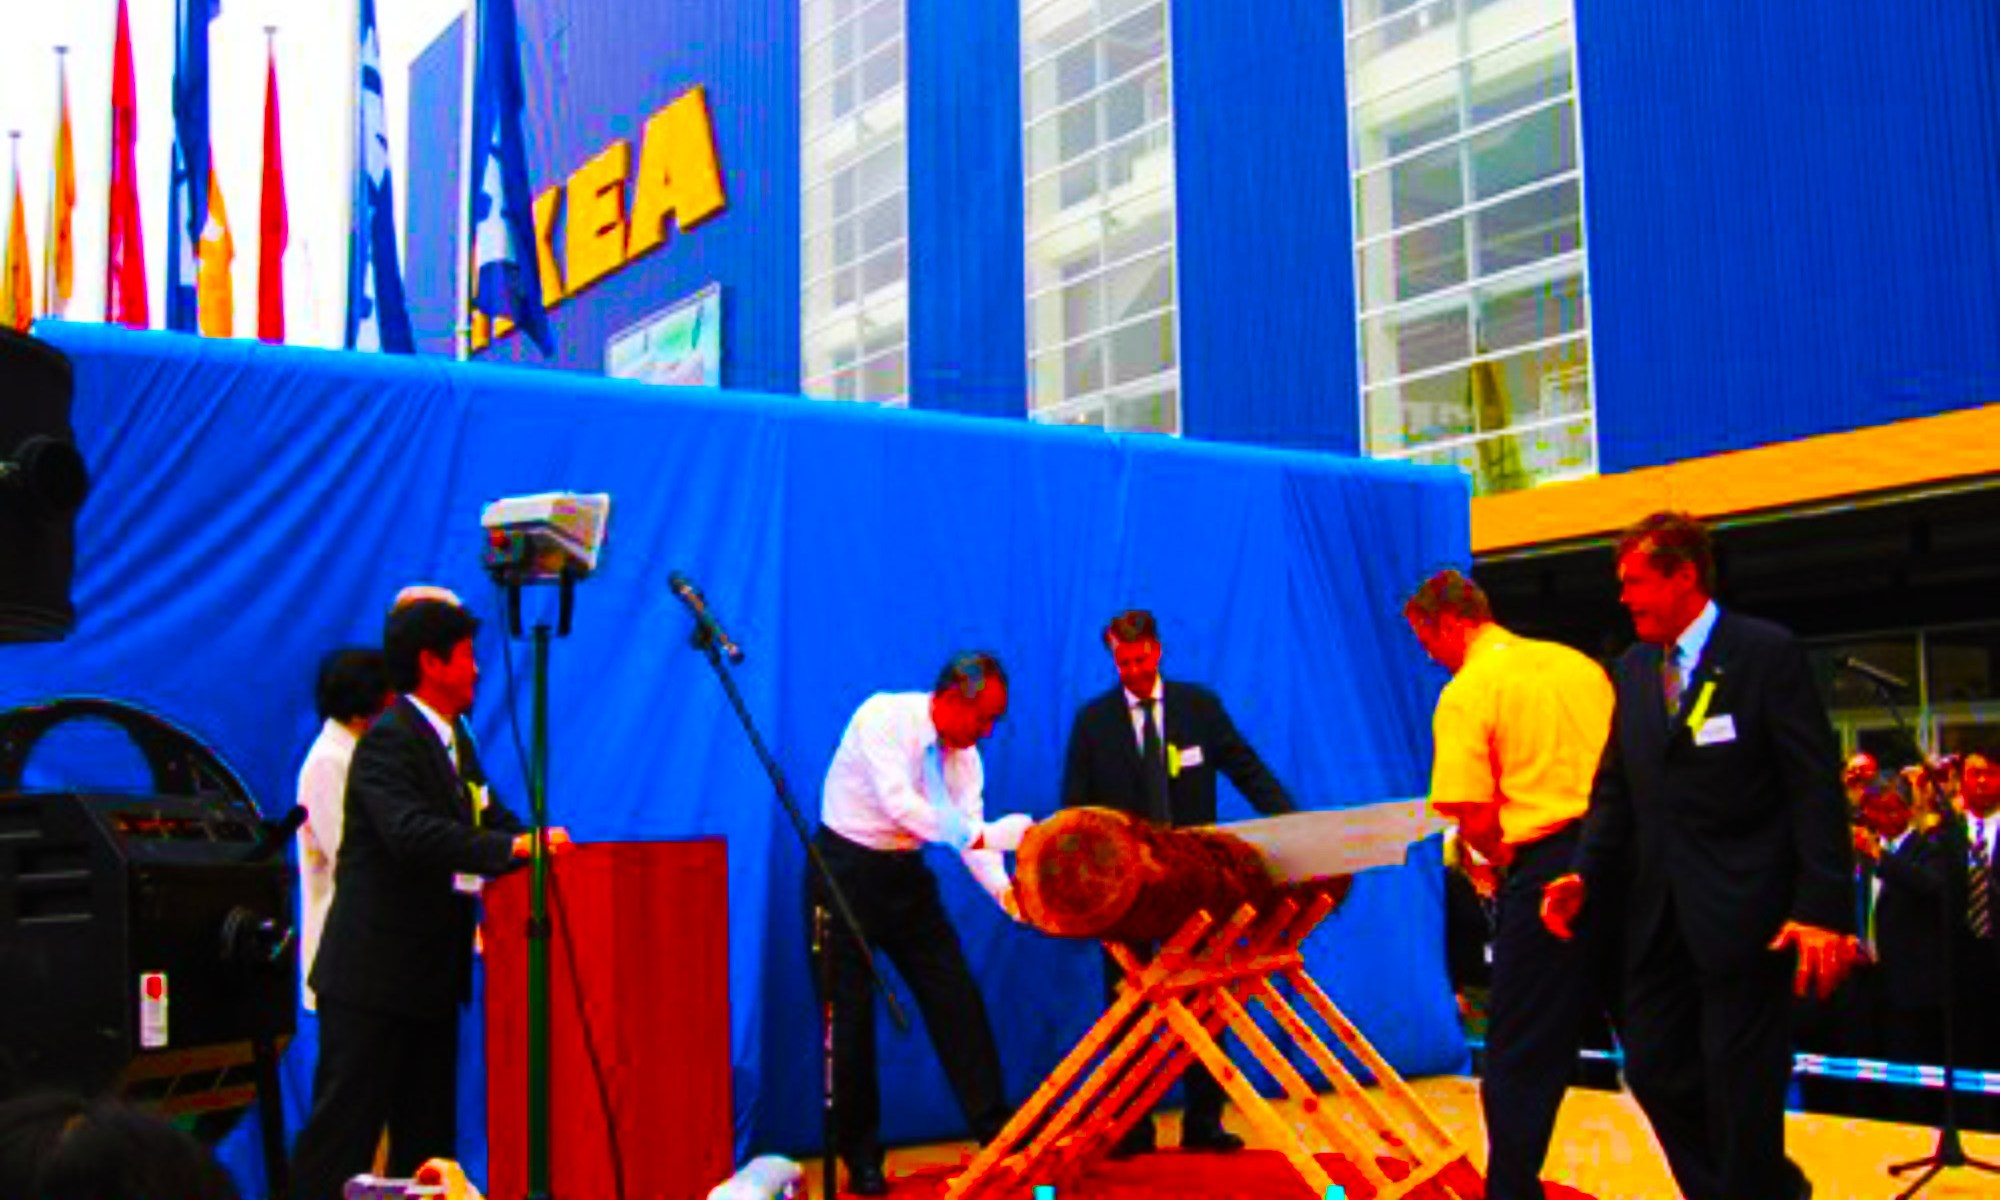 IKEA second market entry to Japan